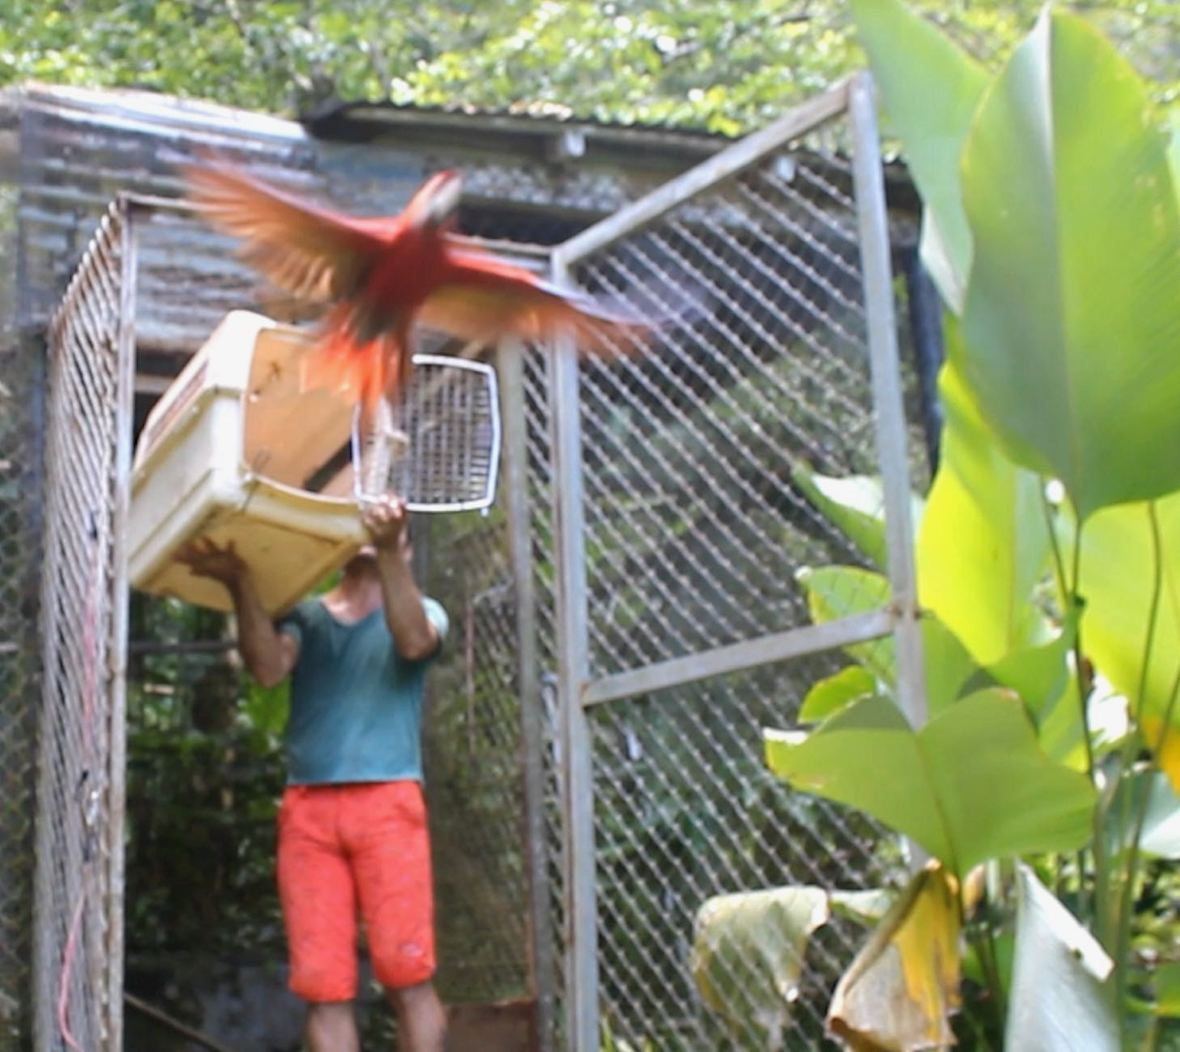 Scarlet macaw flying free from its carrier in its cage